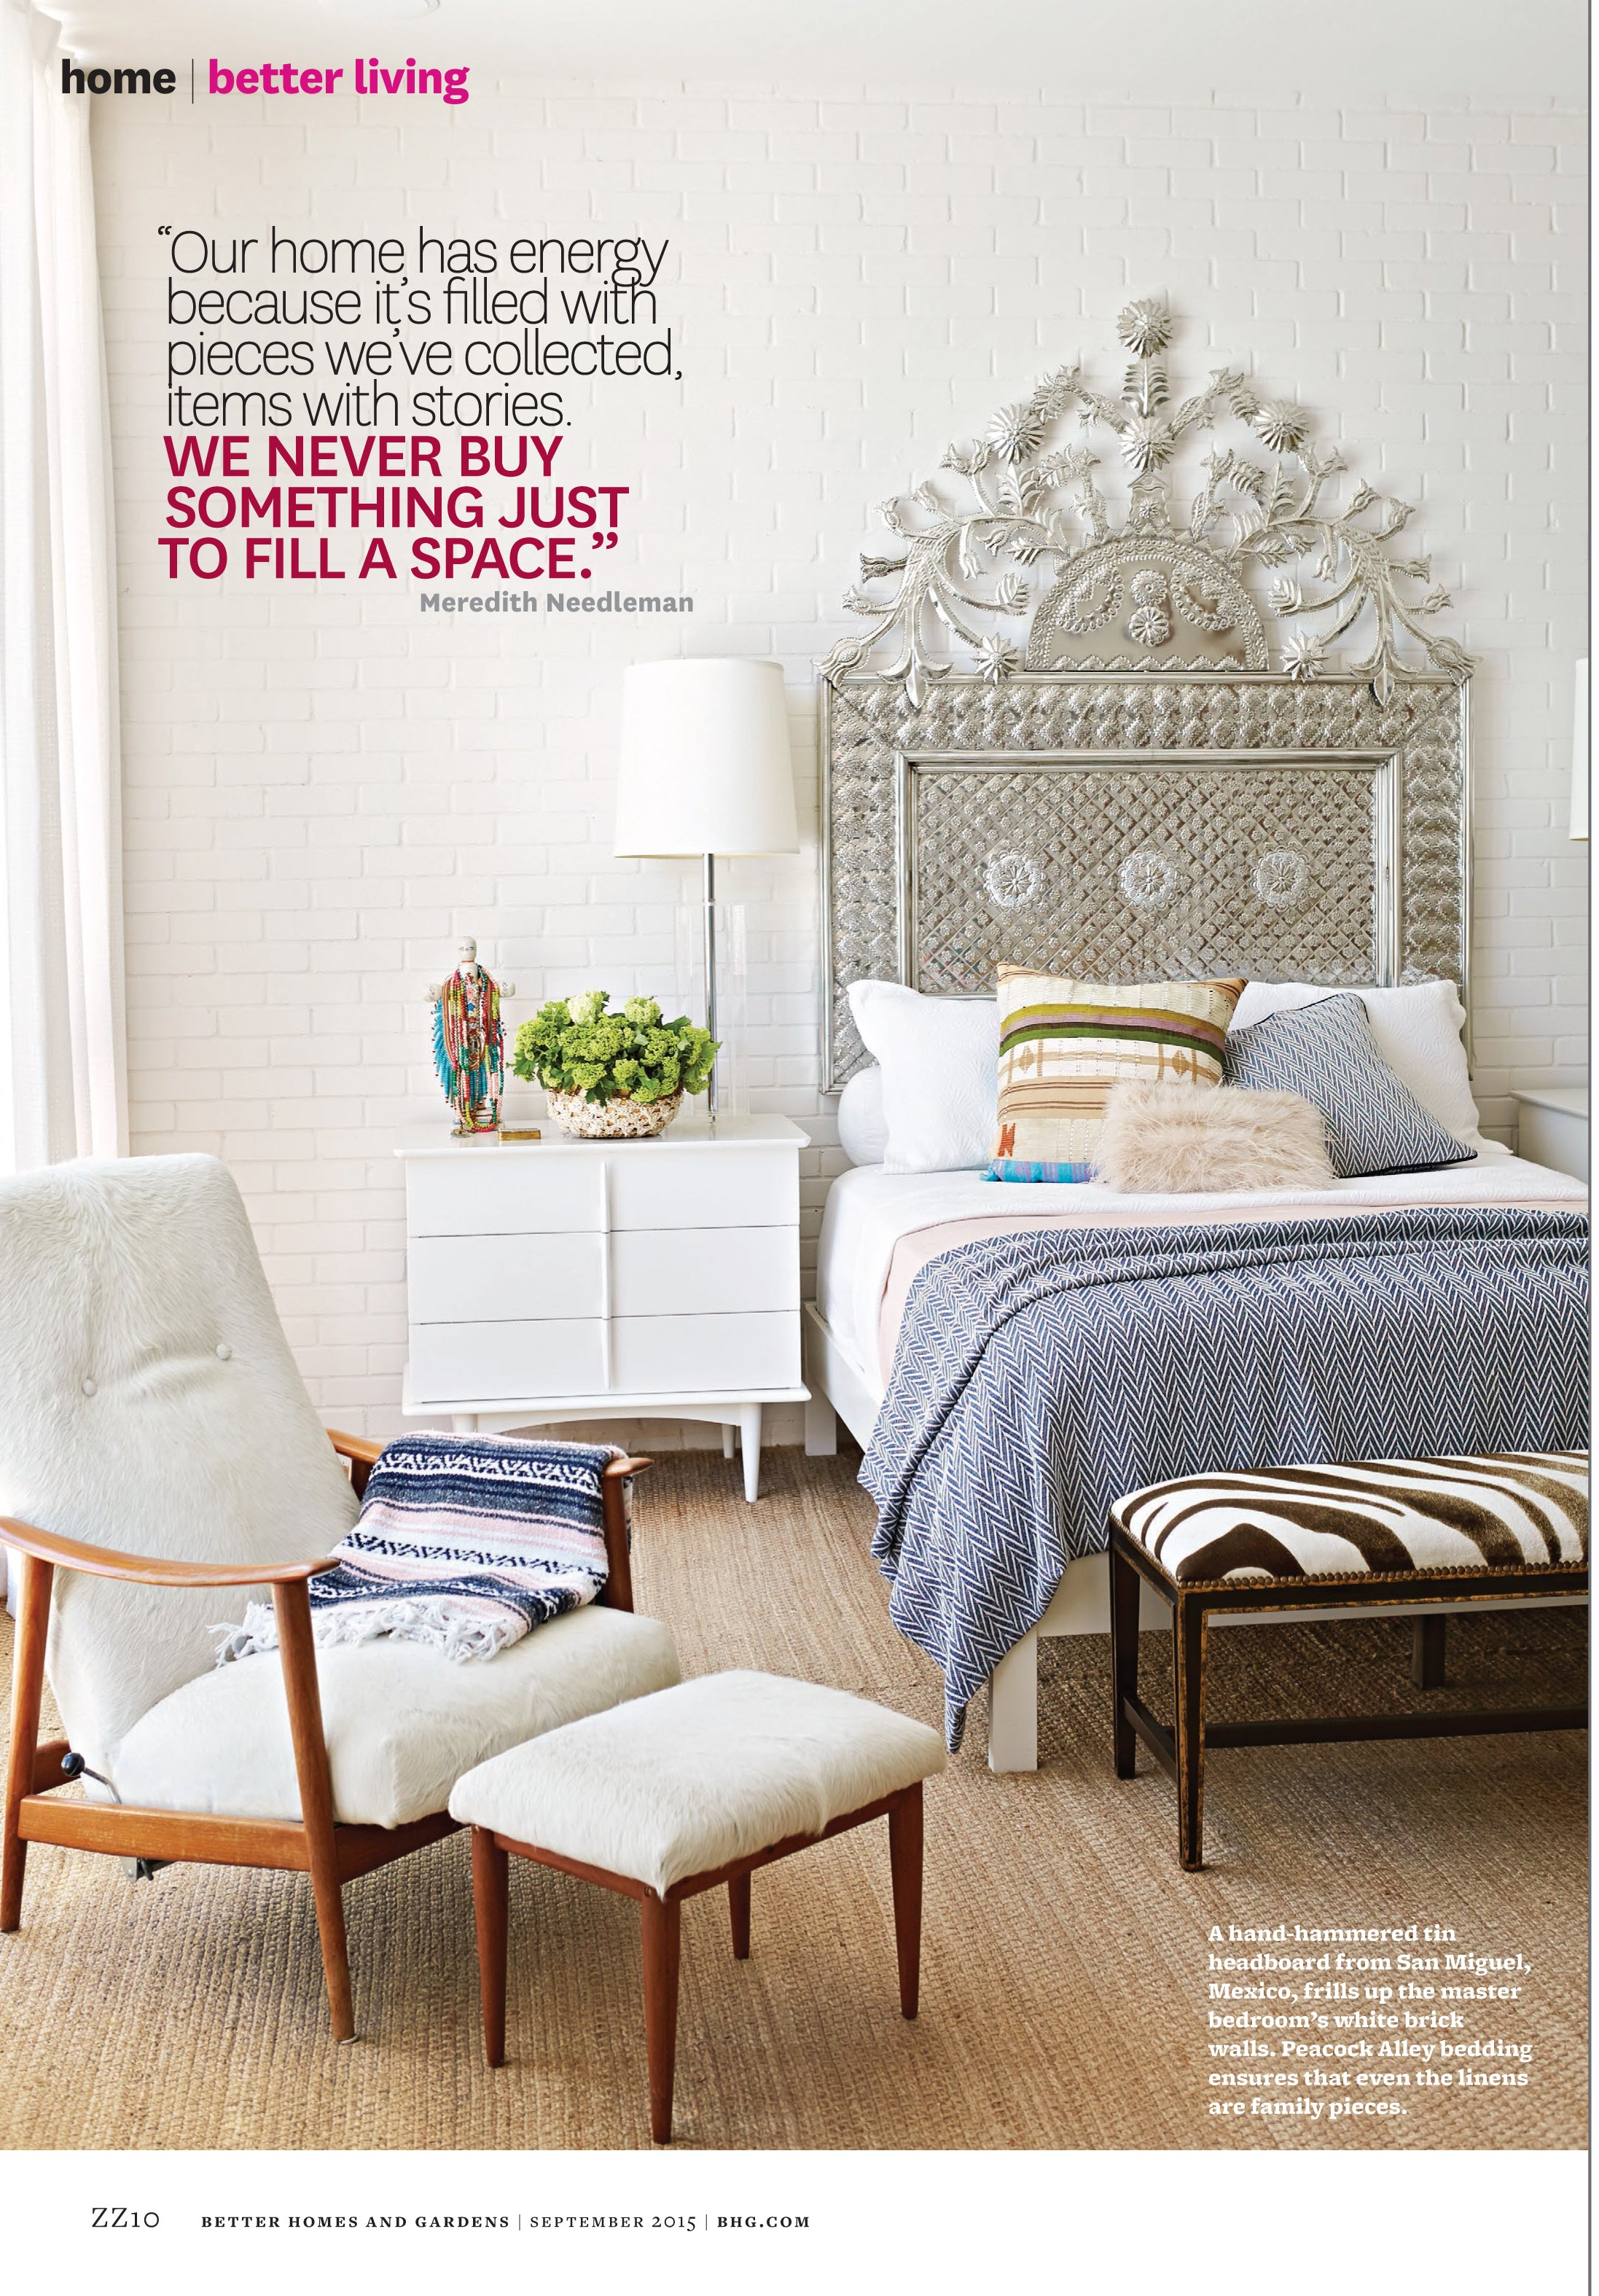 Sixth page of Better Homes and Gardens article, the master bedroom featuring Peacock Alley linens